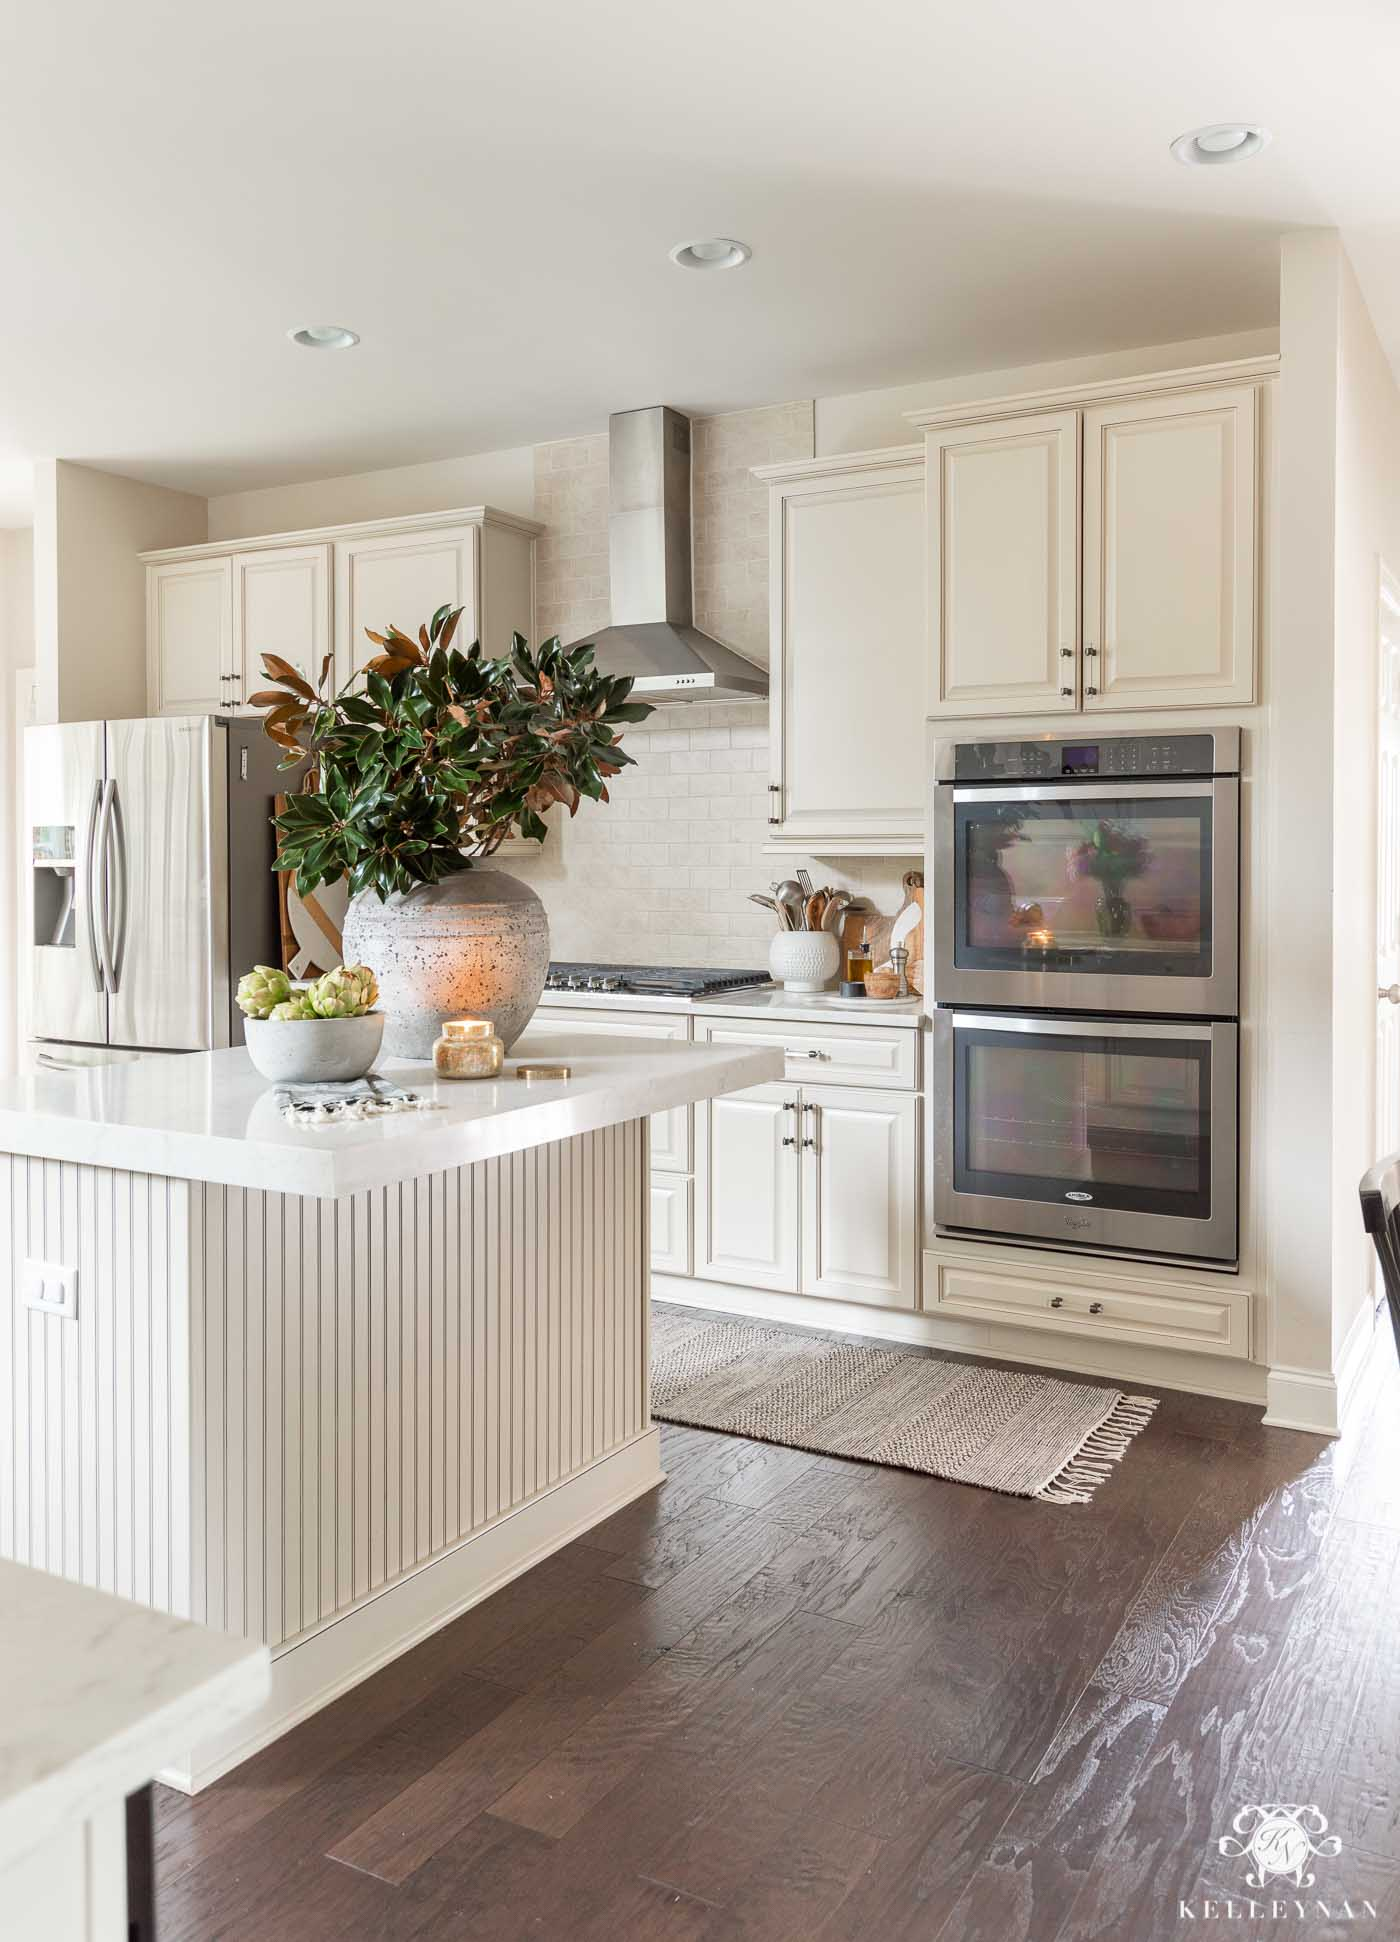 Affordable Kitchen Runners & Rugs